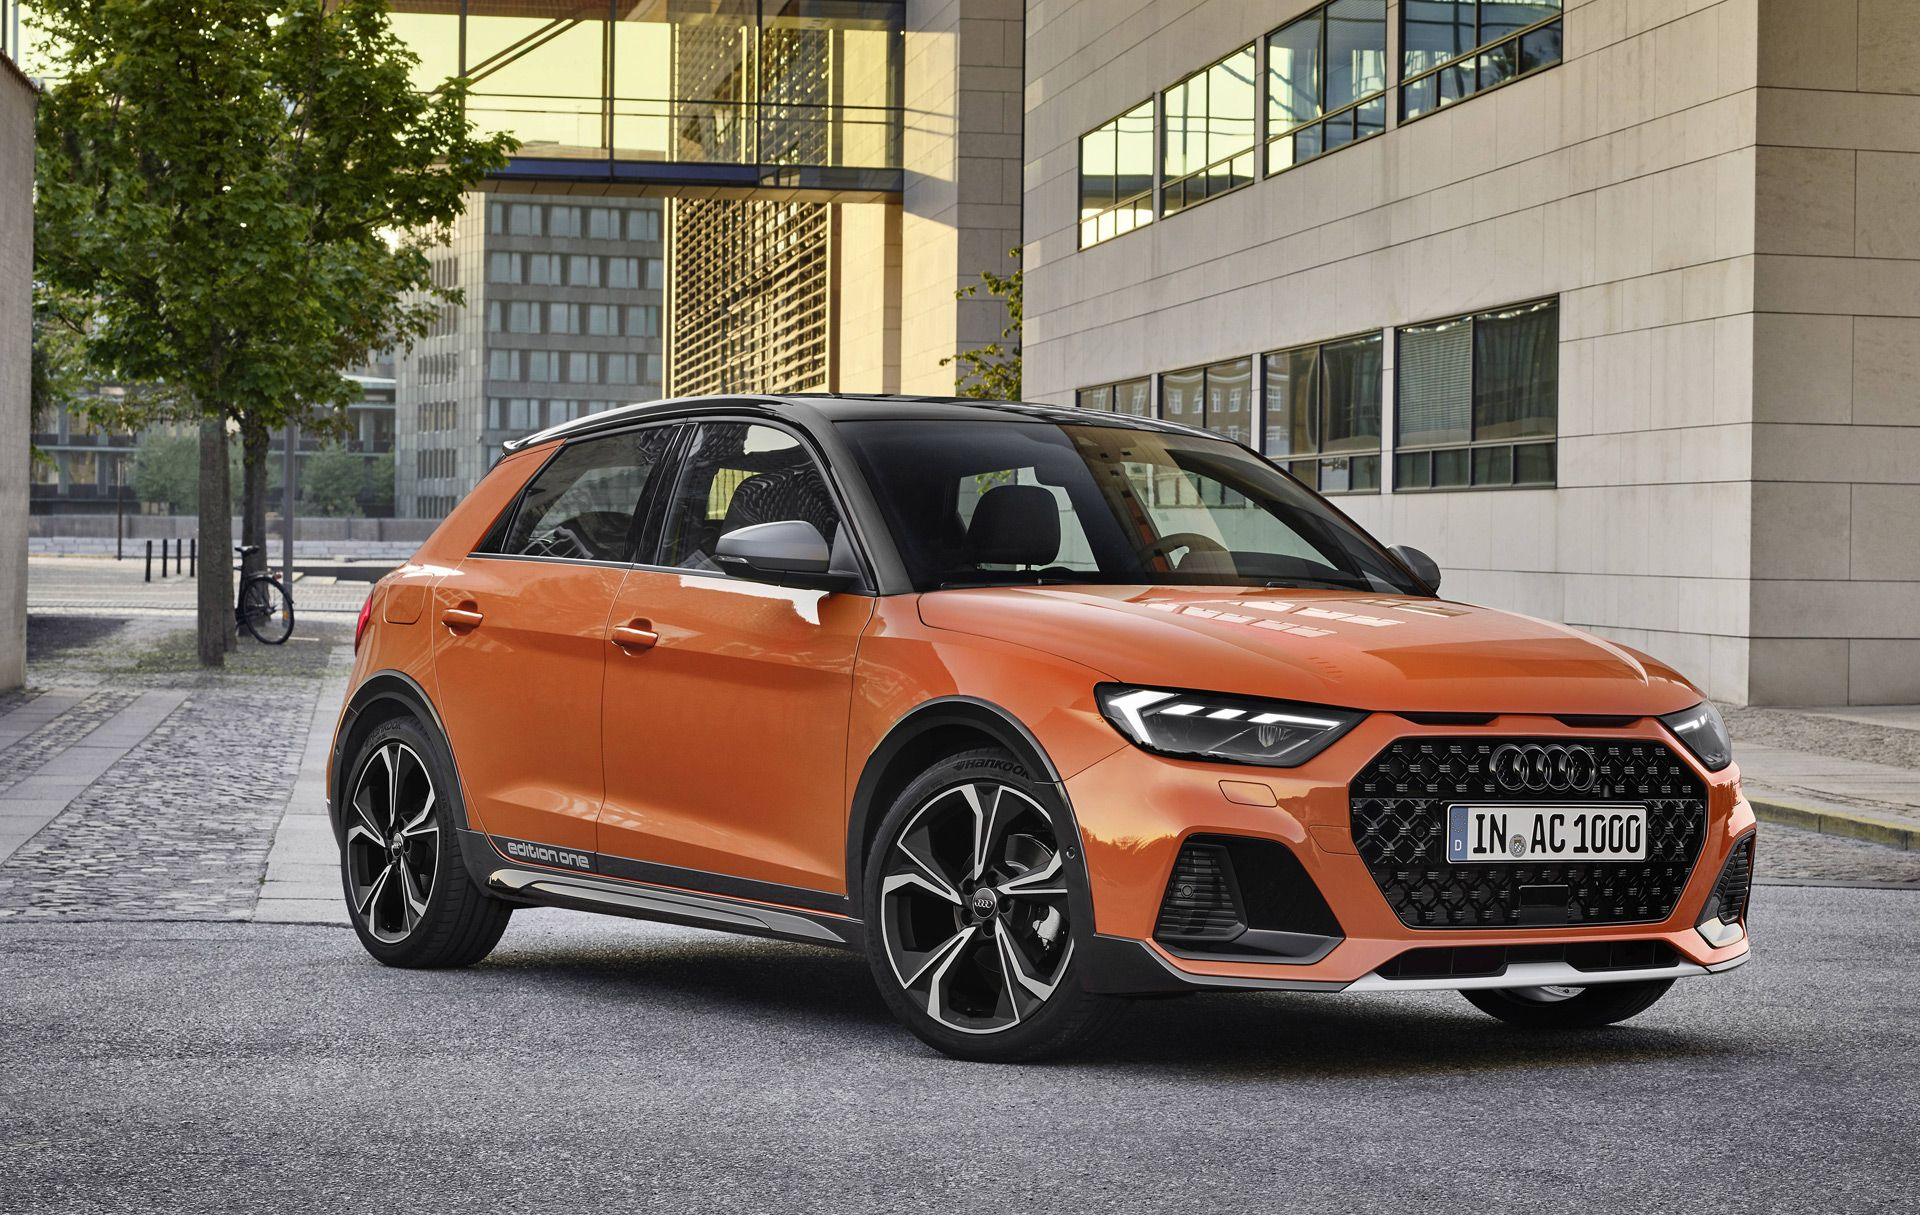 The Audi A1 Sportback Subcompact Hatch Is Now Available As A Soft